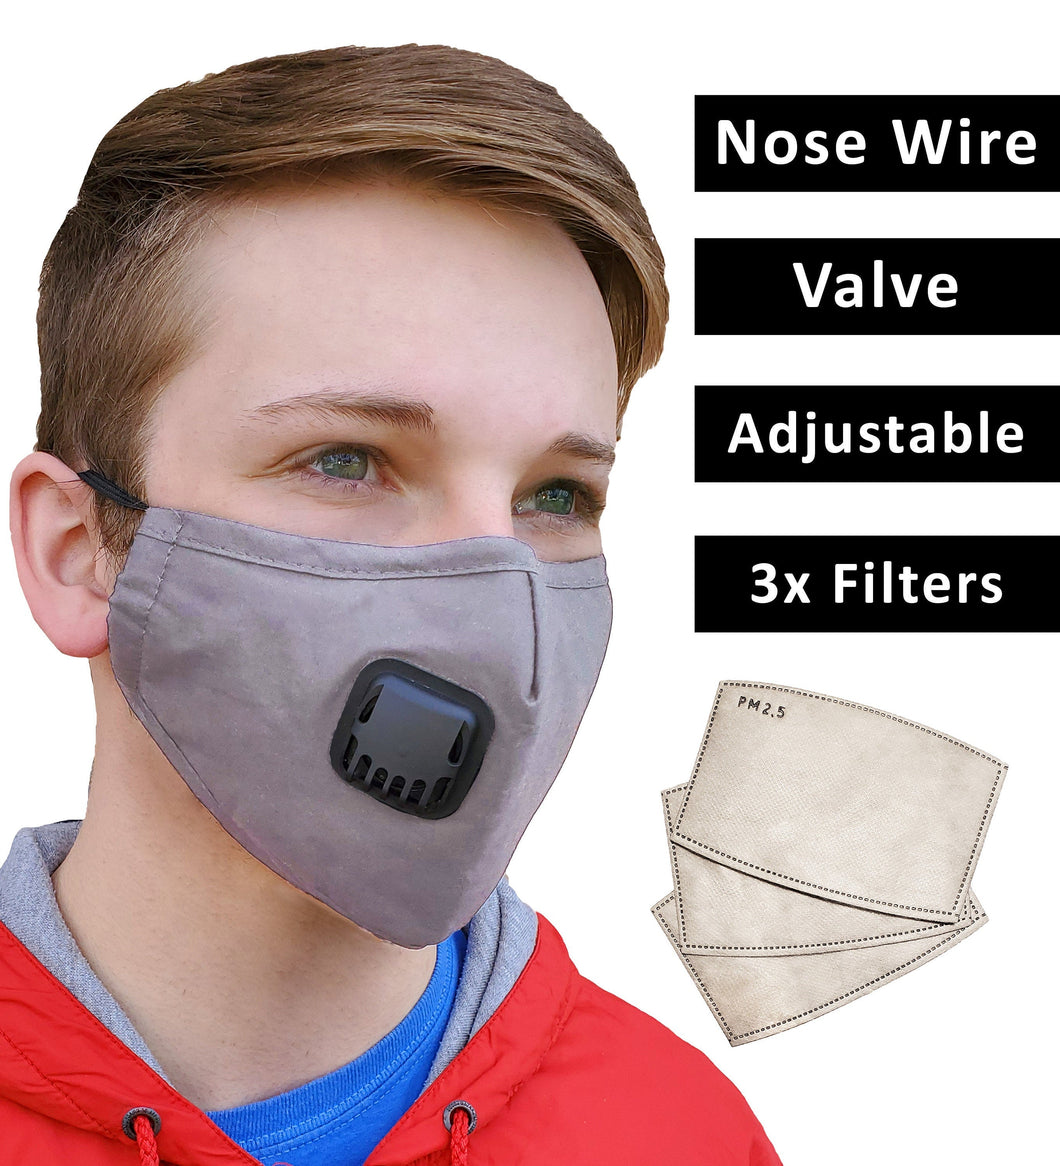 Grey Face Mask + 3 Filters PM 2.5, Cotton, Adjustable Elastic Earloops Metal Nose Clip, Re-Usable, Small, Medium Adult, Fast Shipping USA